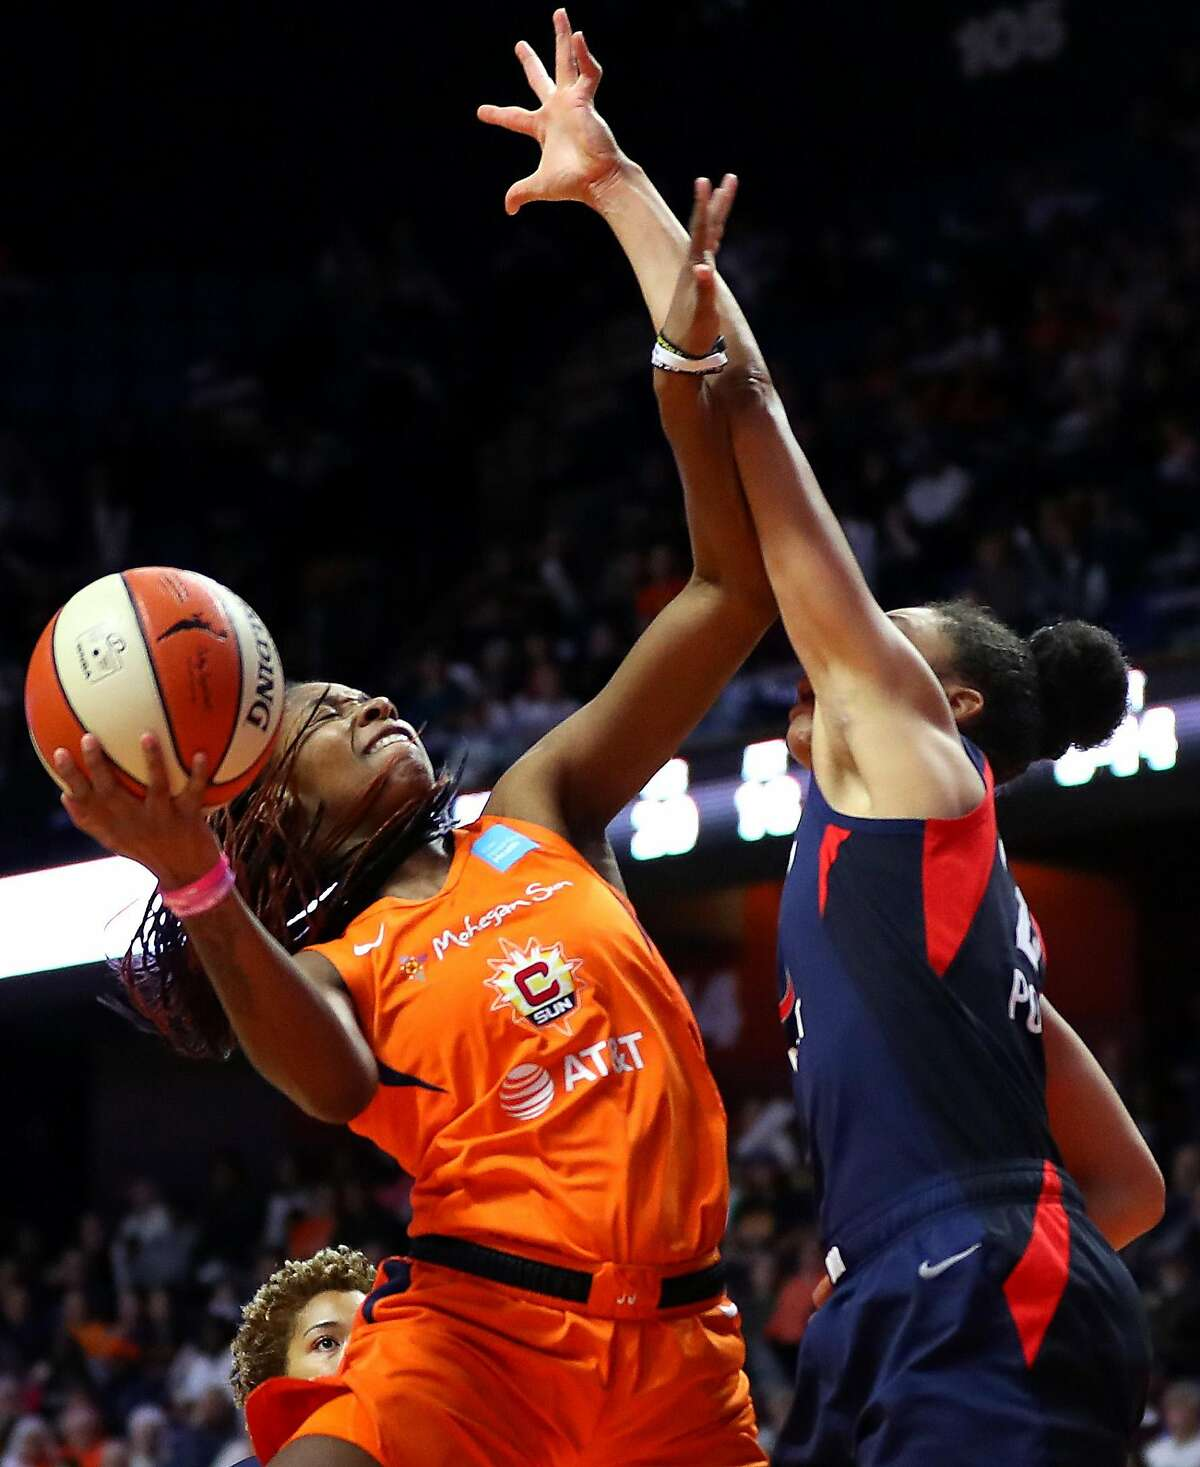 UNCASVILLE, CONNECTICUT - OCTOBER 08: Aerial Powers #23 of Washington Mystics defends a shot from Jonquel Jones #35 of Connecticut Sun during Game Four of the 2019 WNBA Finals between the Washington Mystics and Connecticut Sun at Mohegan Sun Arena on October 08, 2019 in Uncasville, Connecticut. The Sun defeat the Mystics 90-86. (Photo by Maddie Meyer/Getty Images)